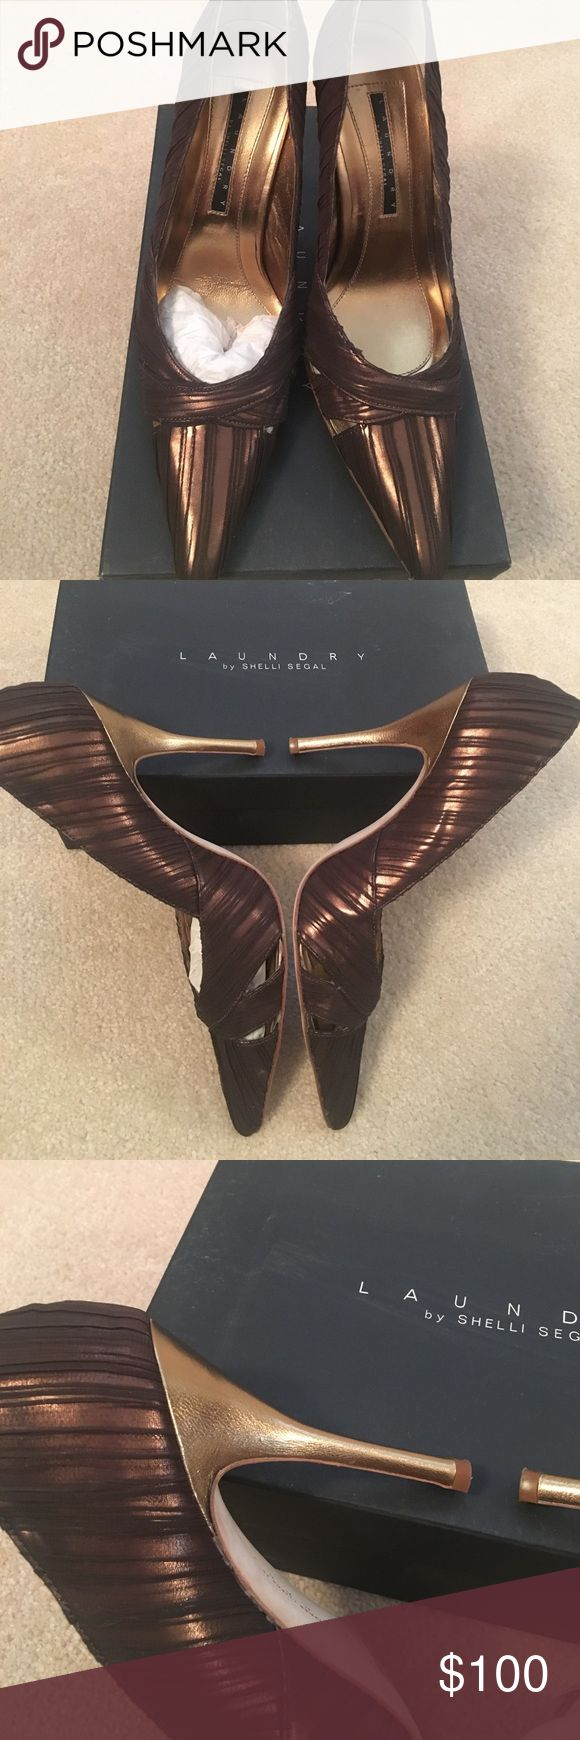 Laundry by Shelli Segal pumps The most amazing heels I've ever seen! Bronze shoe with cutout detailing accented by gold heels! Stunning every way you turn! NWT...absolutely fabulous! Laundry by Shelli Segal Shoes Heels